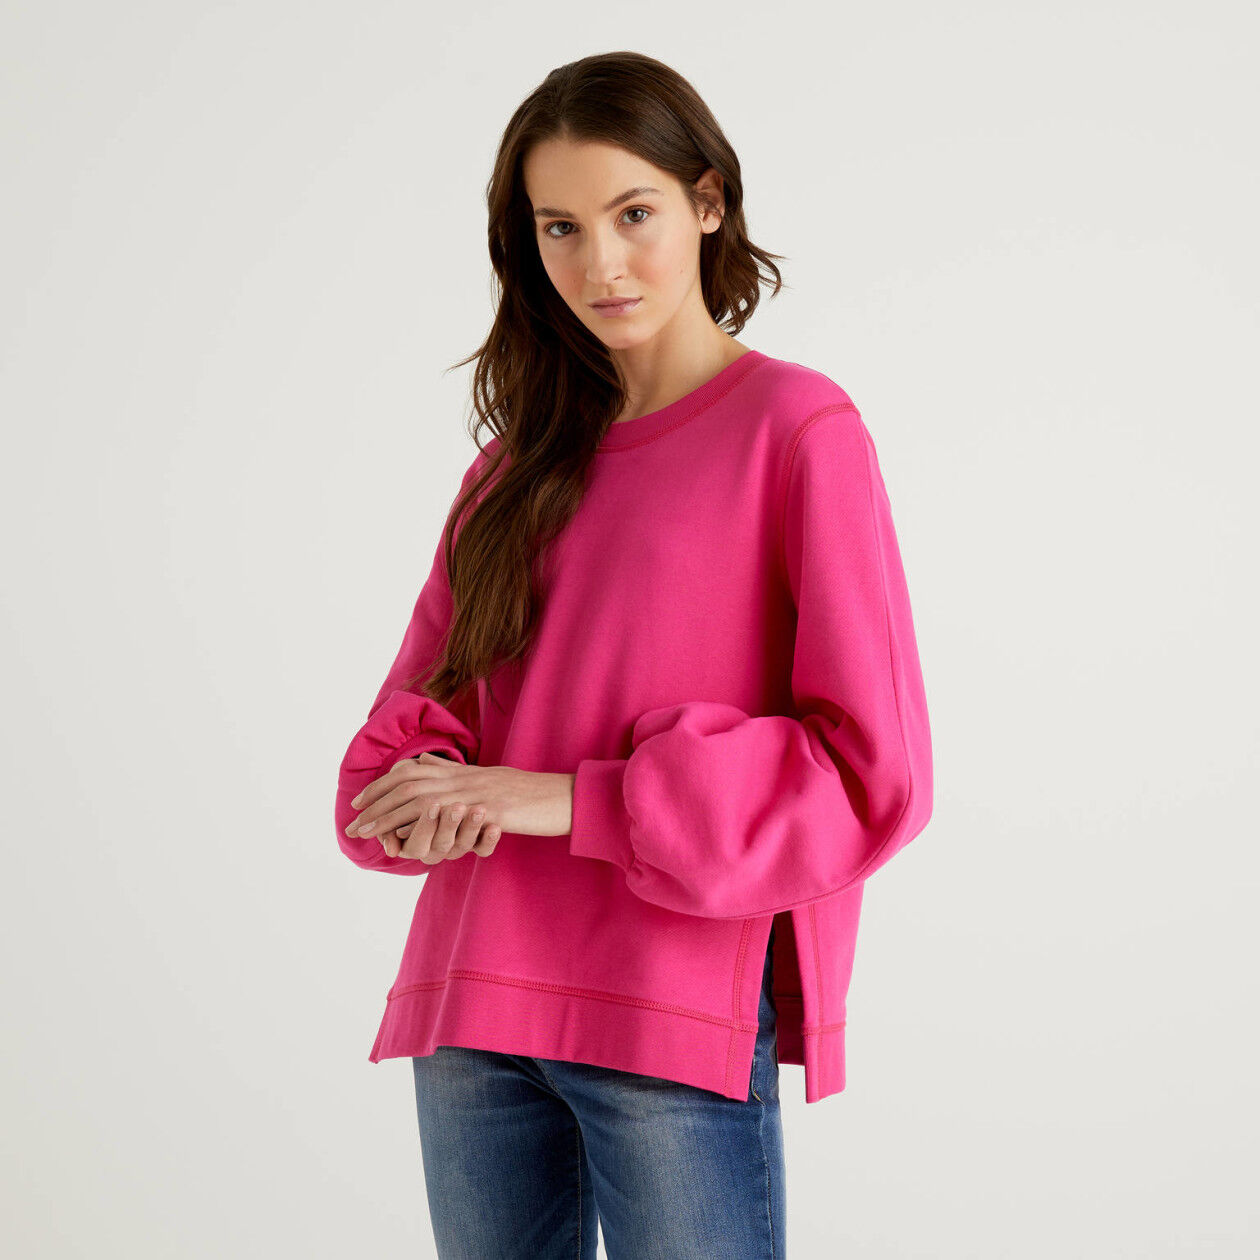 Cotton sweatshirt with puff sleeves